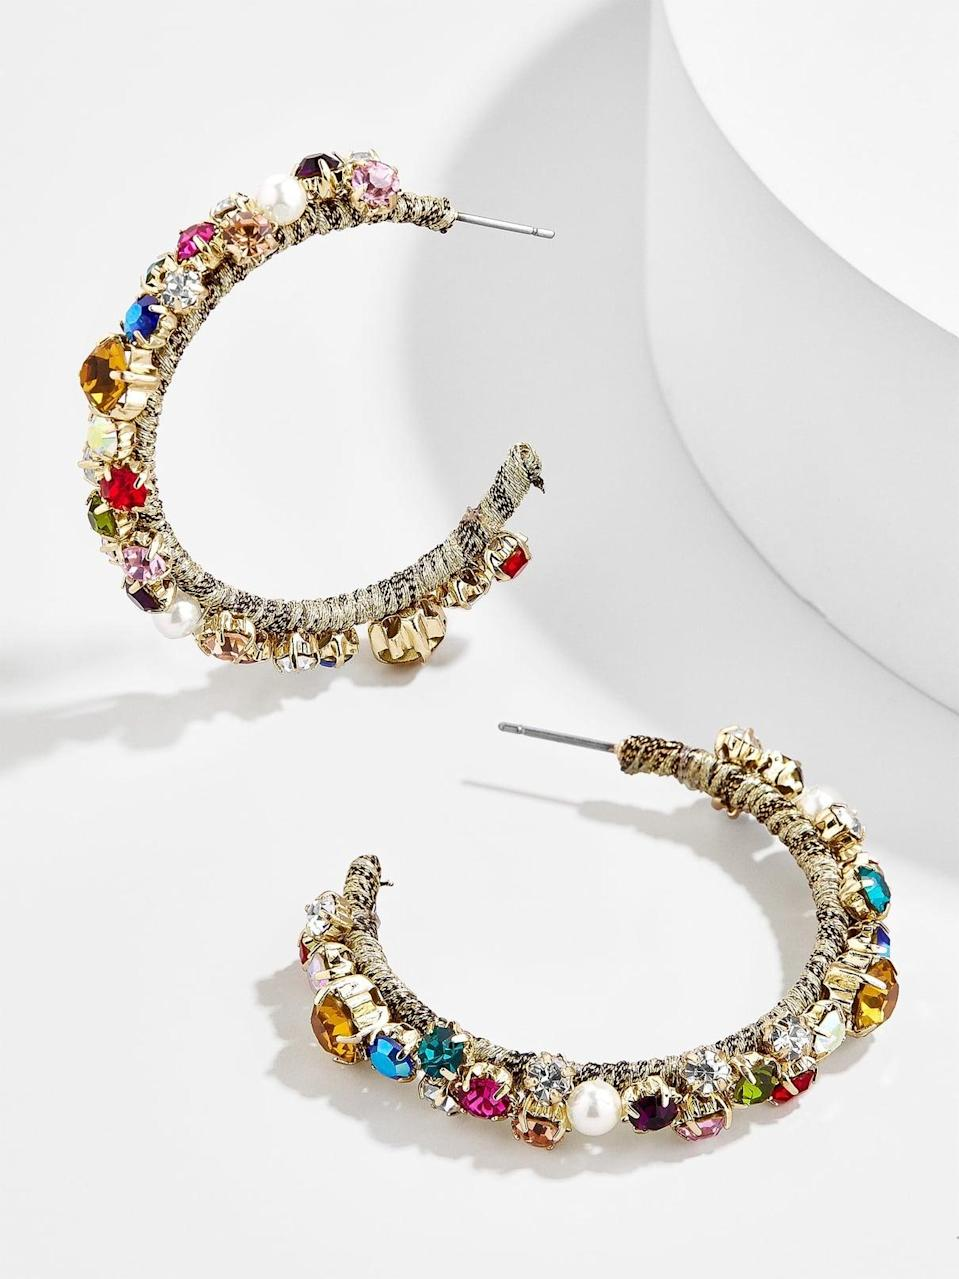 "<p><a href=""https://www.popsugar.com/buy/Elysian-Hoops-570412?p_name=Elysian%20Hoops&retailer=baublebar.com&pid=570412&price=22&evar1=fab%3Aus&evar9=47437458&evar98=https%3A%2F%2Fwww.popsugar.com%2Fphoto-gallery%2F47437458%2Fimage%2F47440730%2FElysian-Hoops&list1=shopping%2Cjewelry%2Caccessories%2Cbaublebar%2Cspring%20fashion%2Csale%20shopping%2Cfashion%20shopping&prop13=api&pdata=1"" class=""link rapid-noclick-resp"" rel=""nofollow noopener"" target=""_blank"" data-ylk=""slk:Elysian Hoops"">Elysian Hoops</a> ($22, originally $40)</p>"